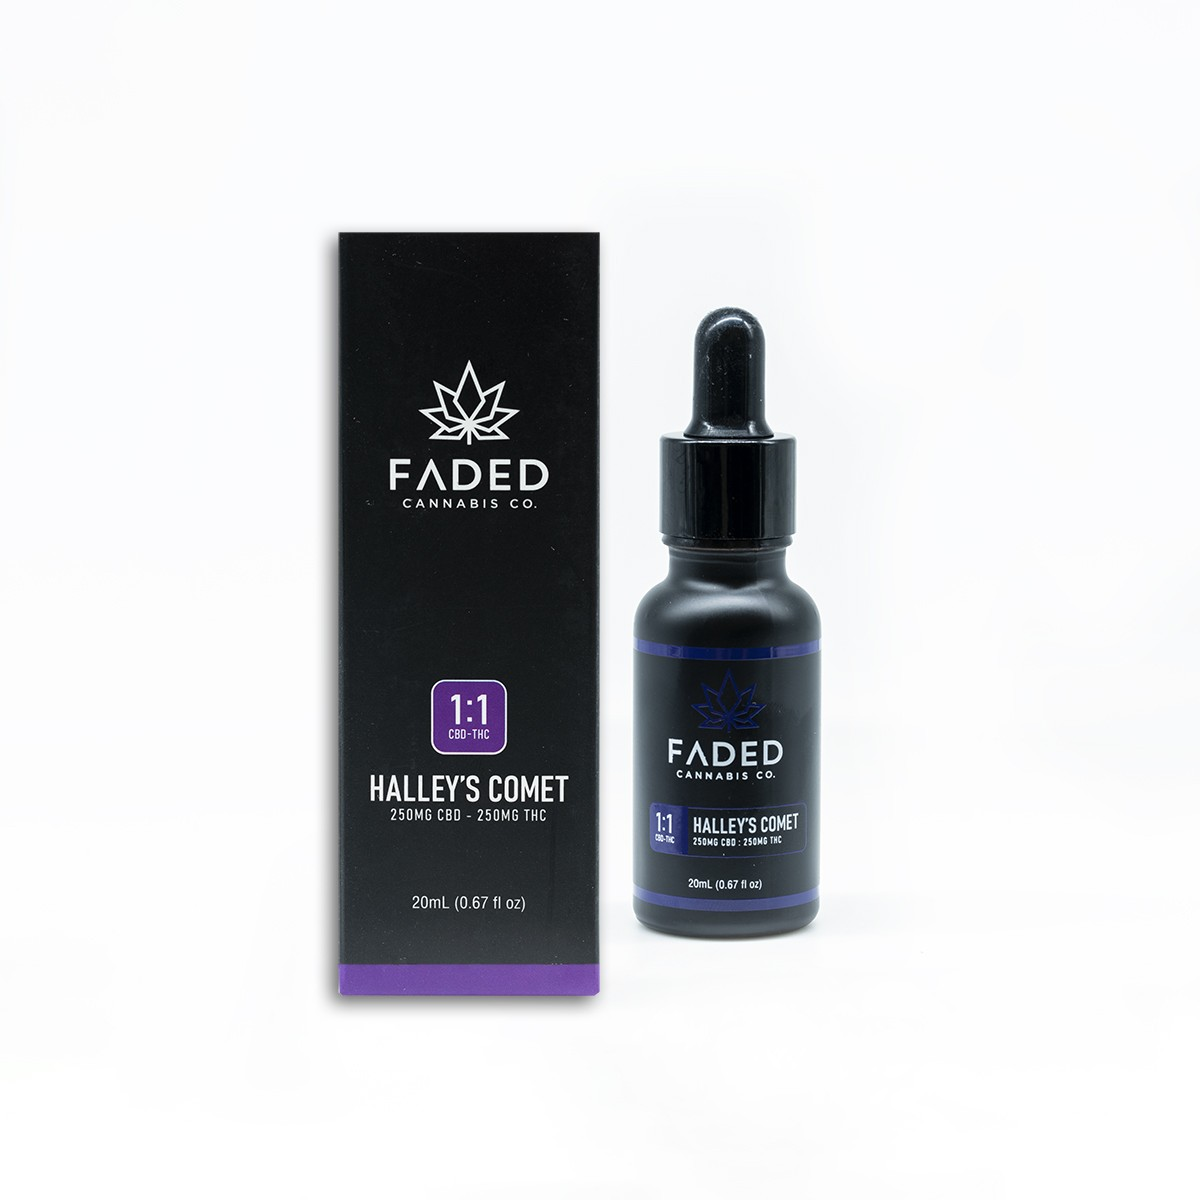 Faded Cannabis Co. Halleys Comet Tincture 1:1 CBD/THC by Get Kush - Image © 2020 Get Kush. All Rights Reserved.